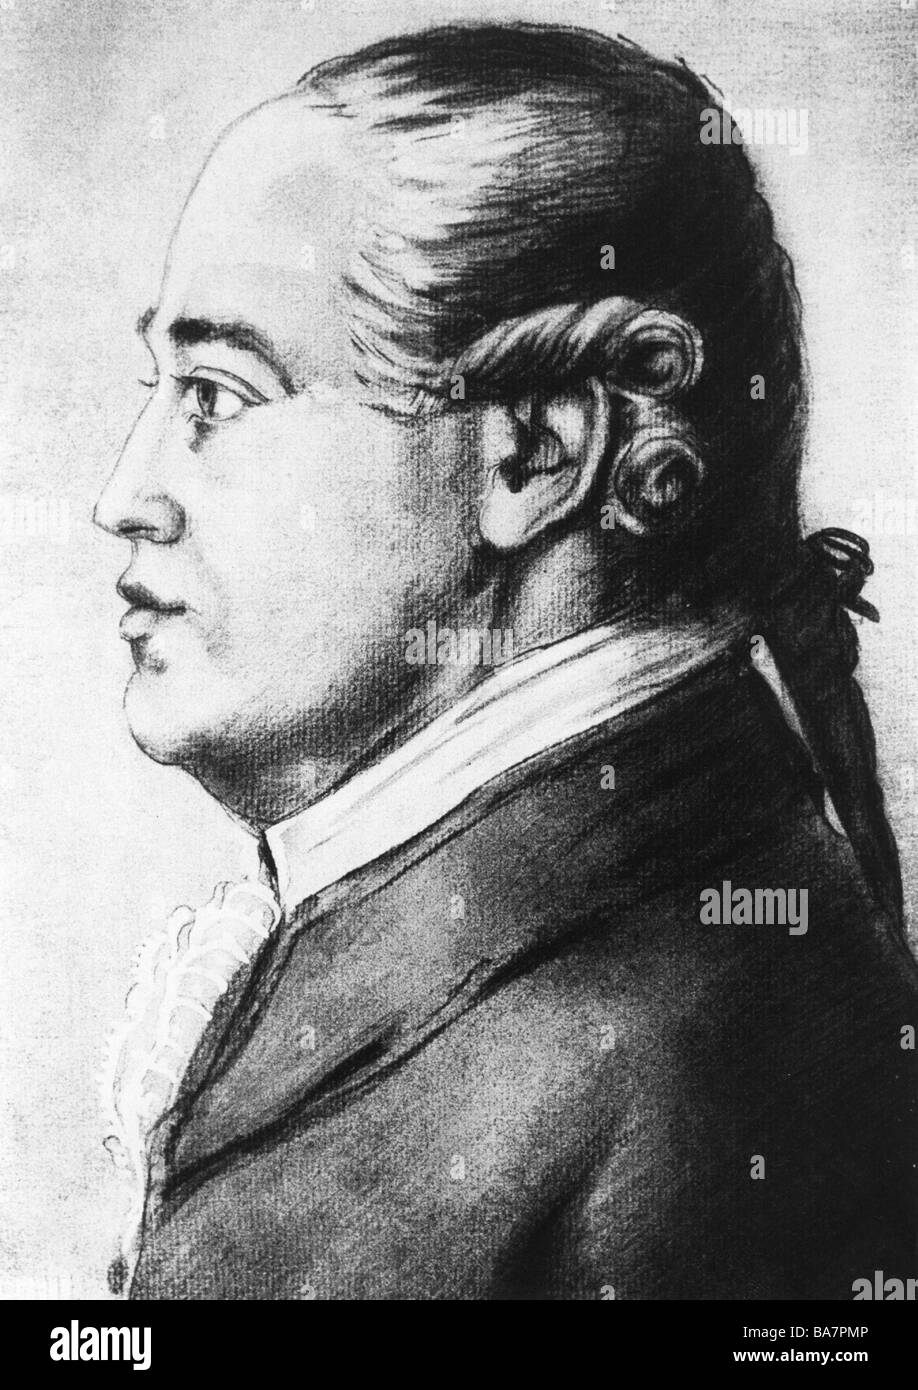 Silbermann, Gottfried, 14.1.1683 - 4.8.1753, German constructor of organs, imaginary portrait after silhouette, - Stock Image